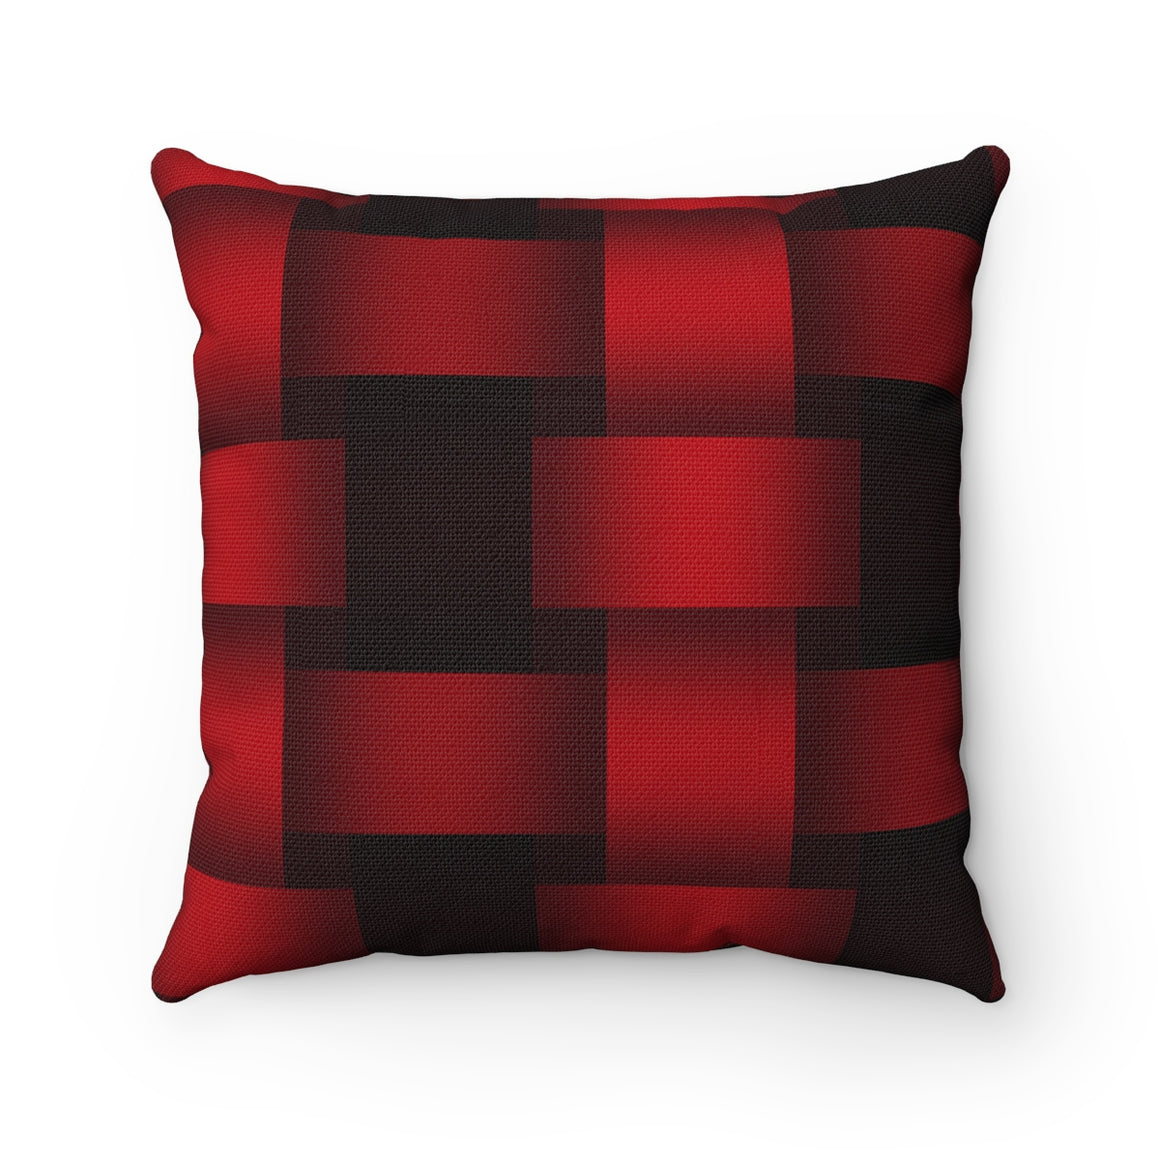 My Fabulous Style Beautiful Red and Black Tile Square Throw Pillow-- Home Decor Throw Pillow